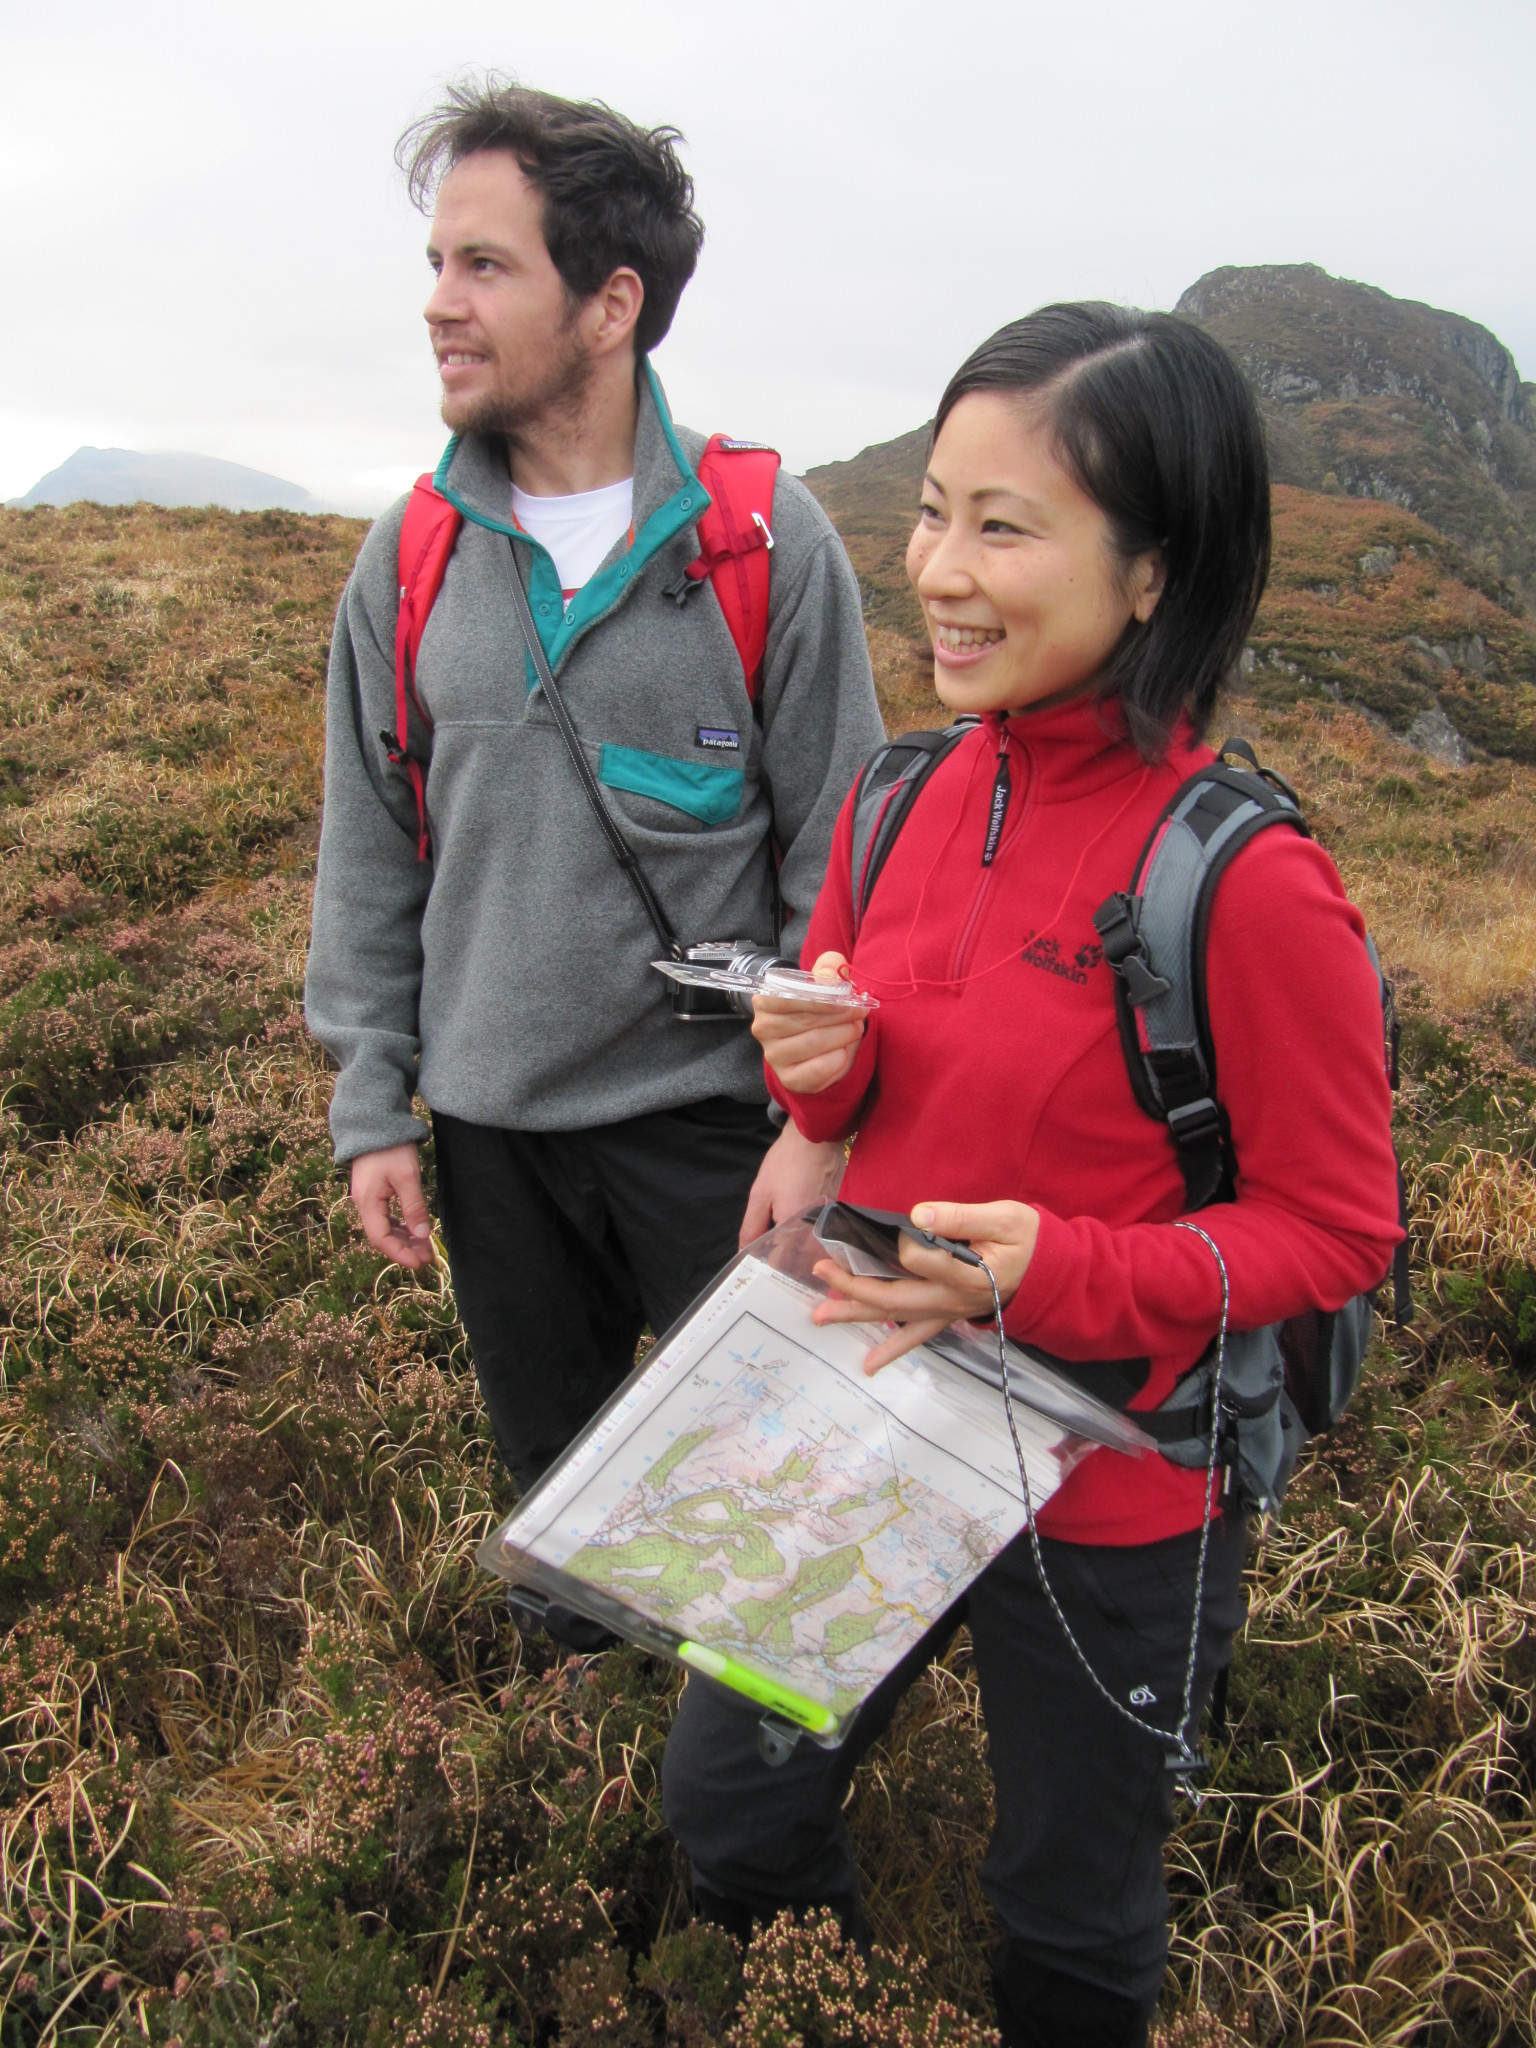 Navigation courses in Snowdonia, the Lake District and Yorkshire Dales